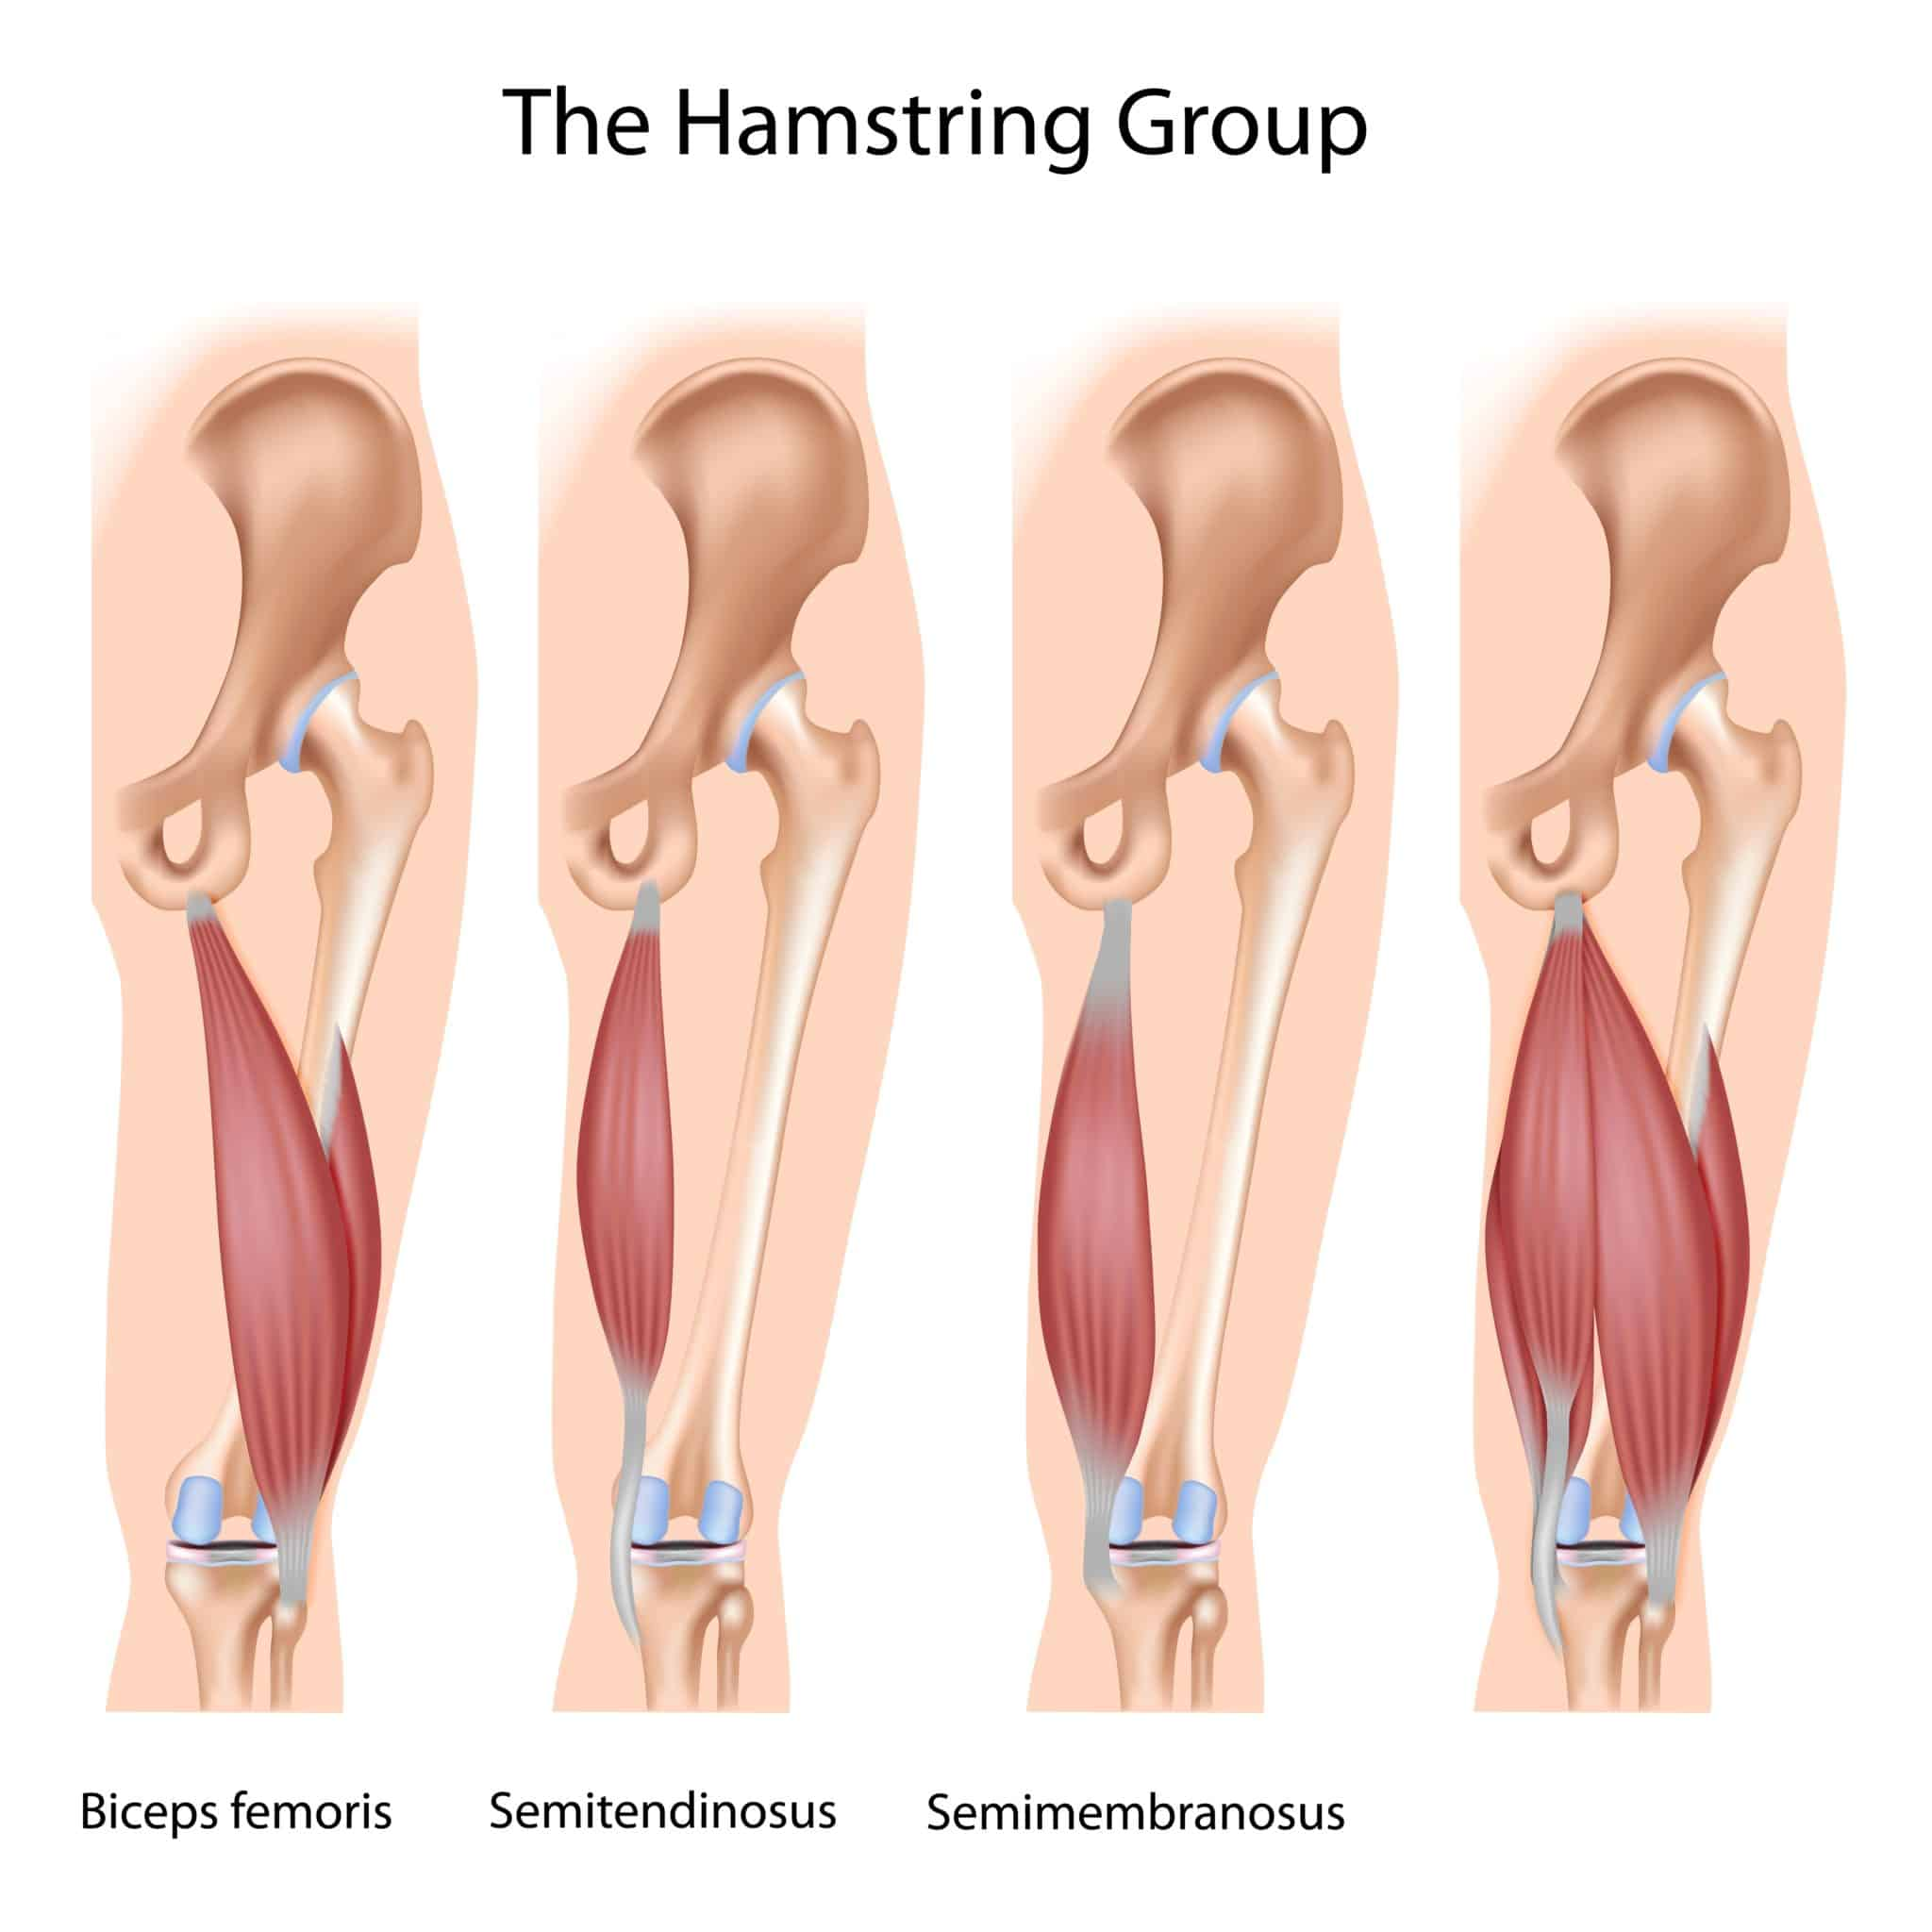 4 anatomical photos of the hamstring group, text stating the muscle group being shown. Biceps femoris, semitendinosus, and semimembranosus.